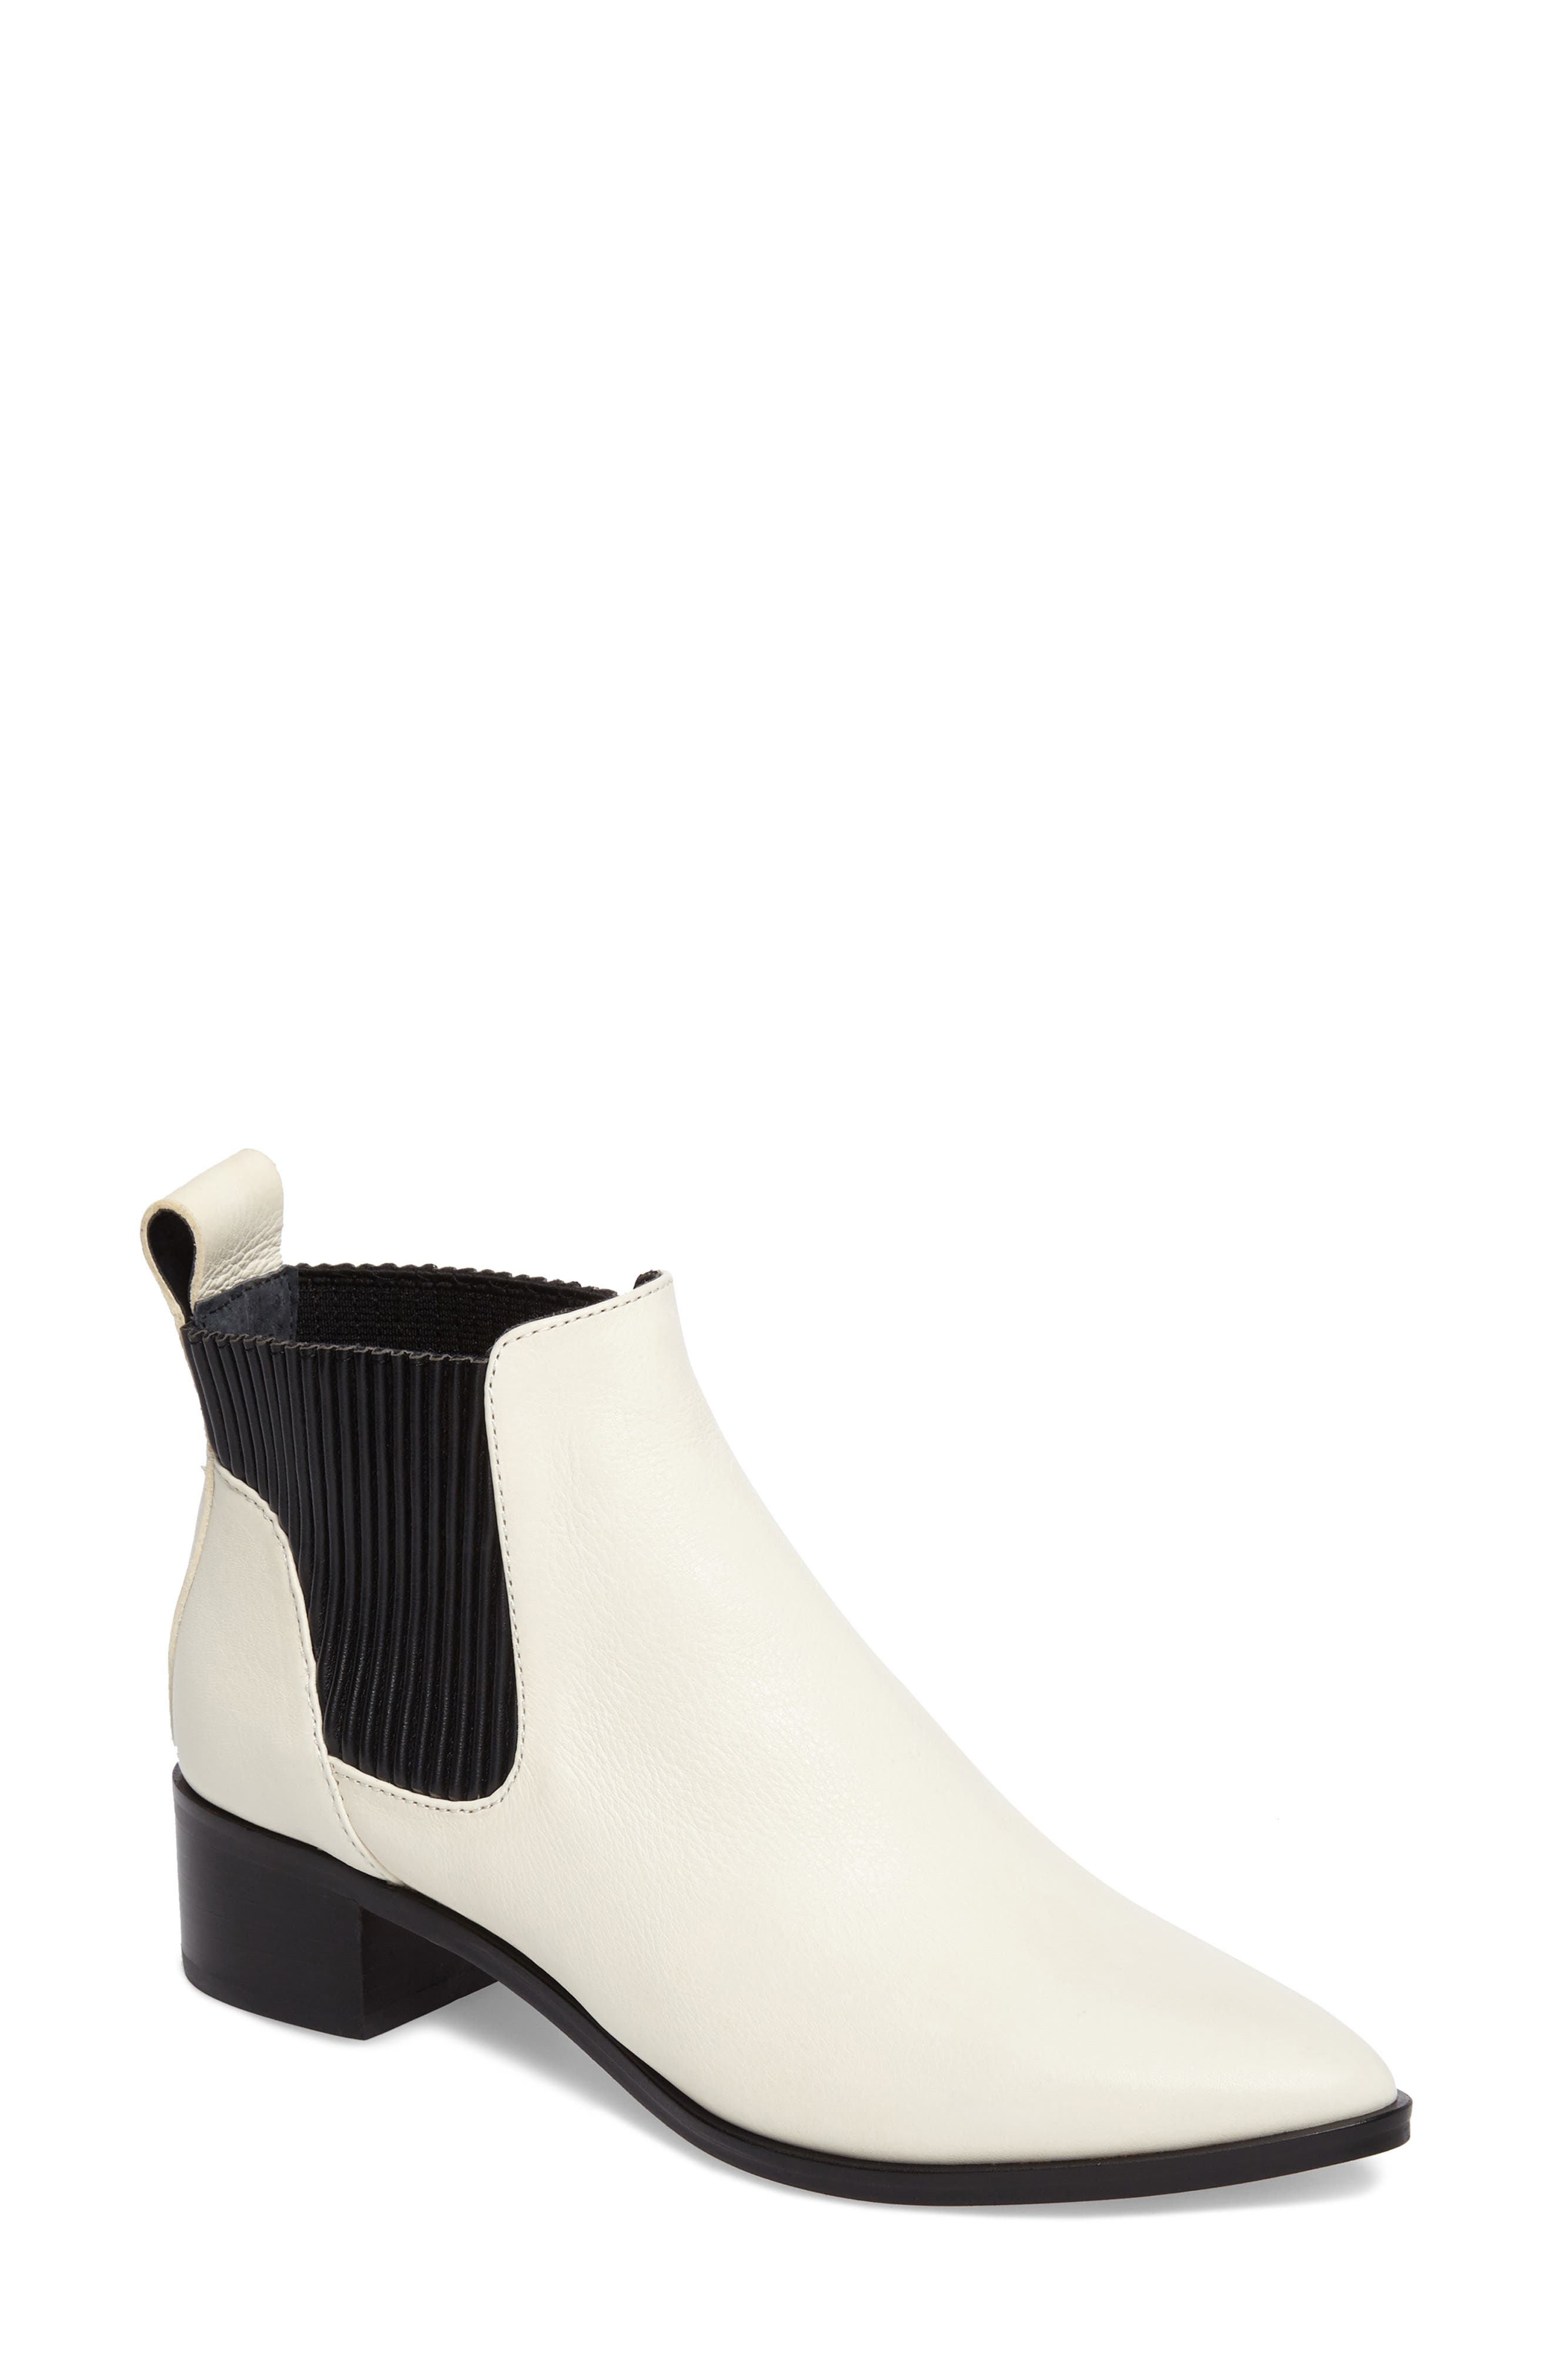 Macie Pointy Toe Chelsea Bootie,                         Main,                         color, Off White Lea